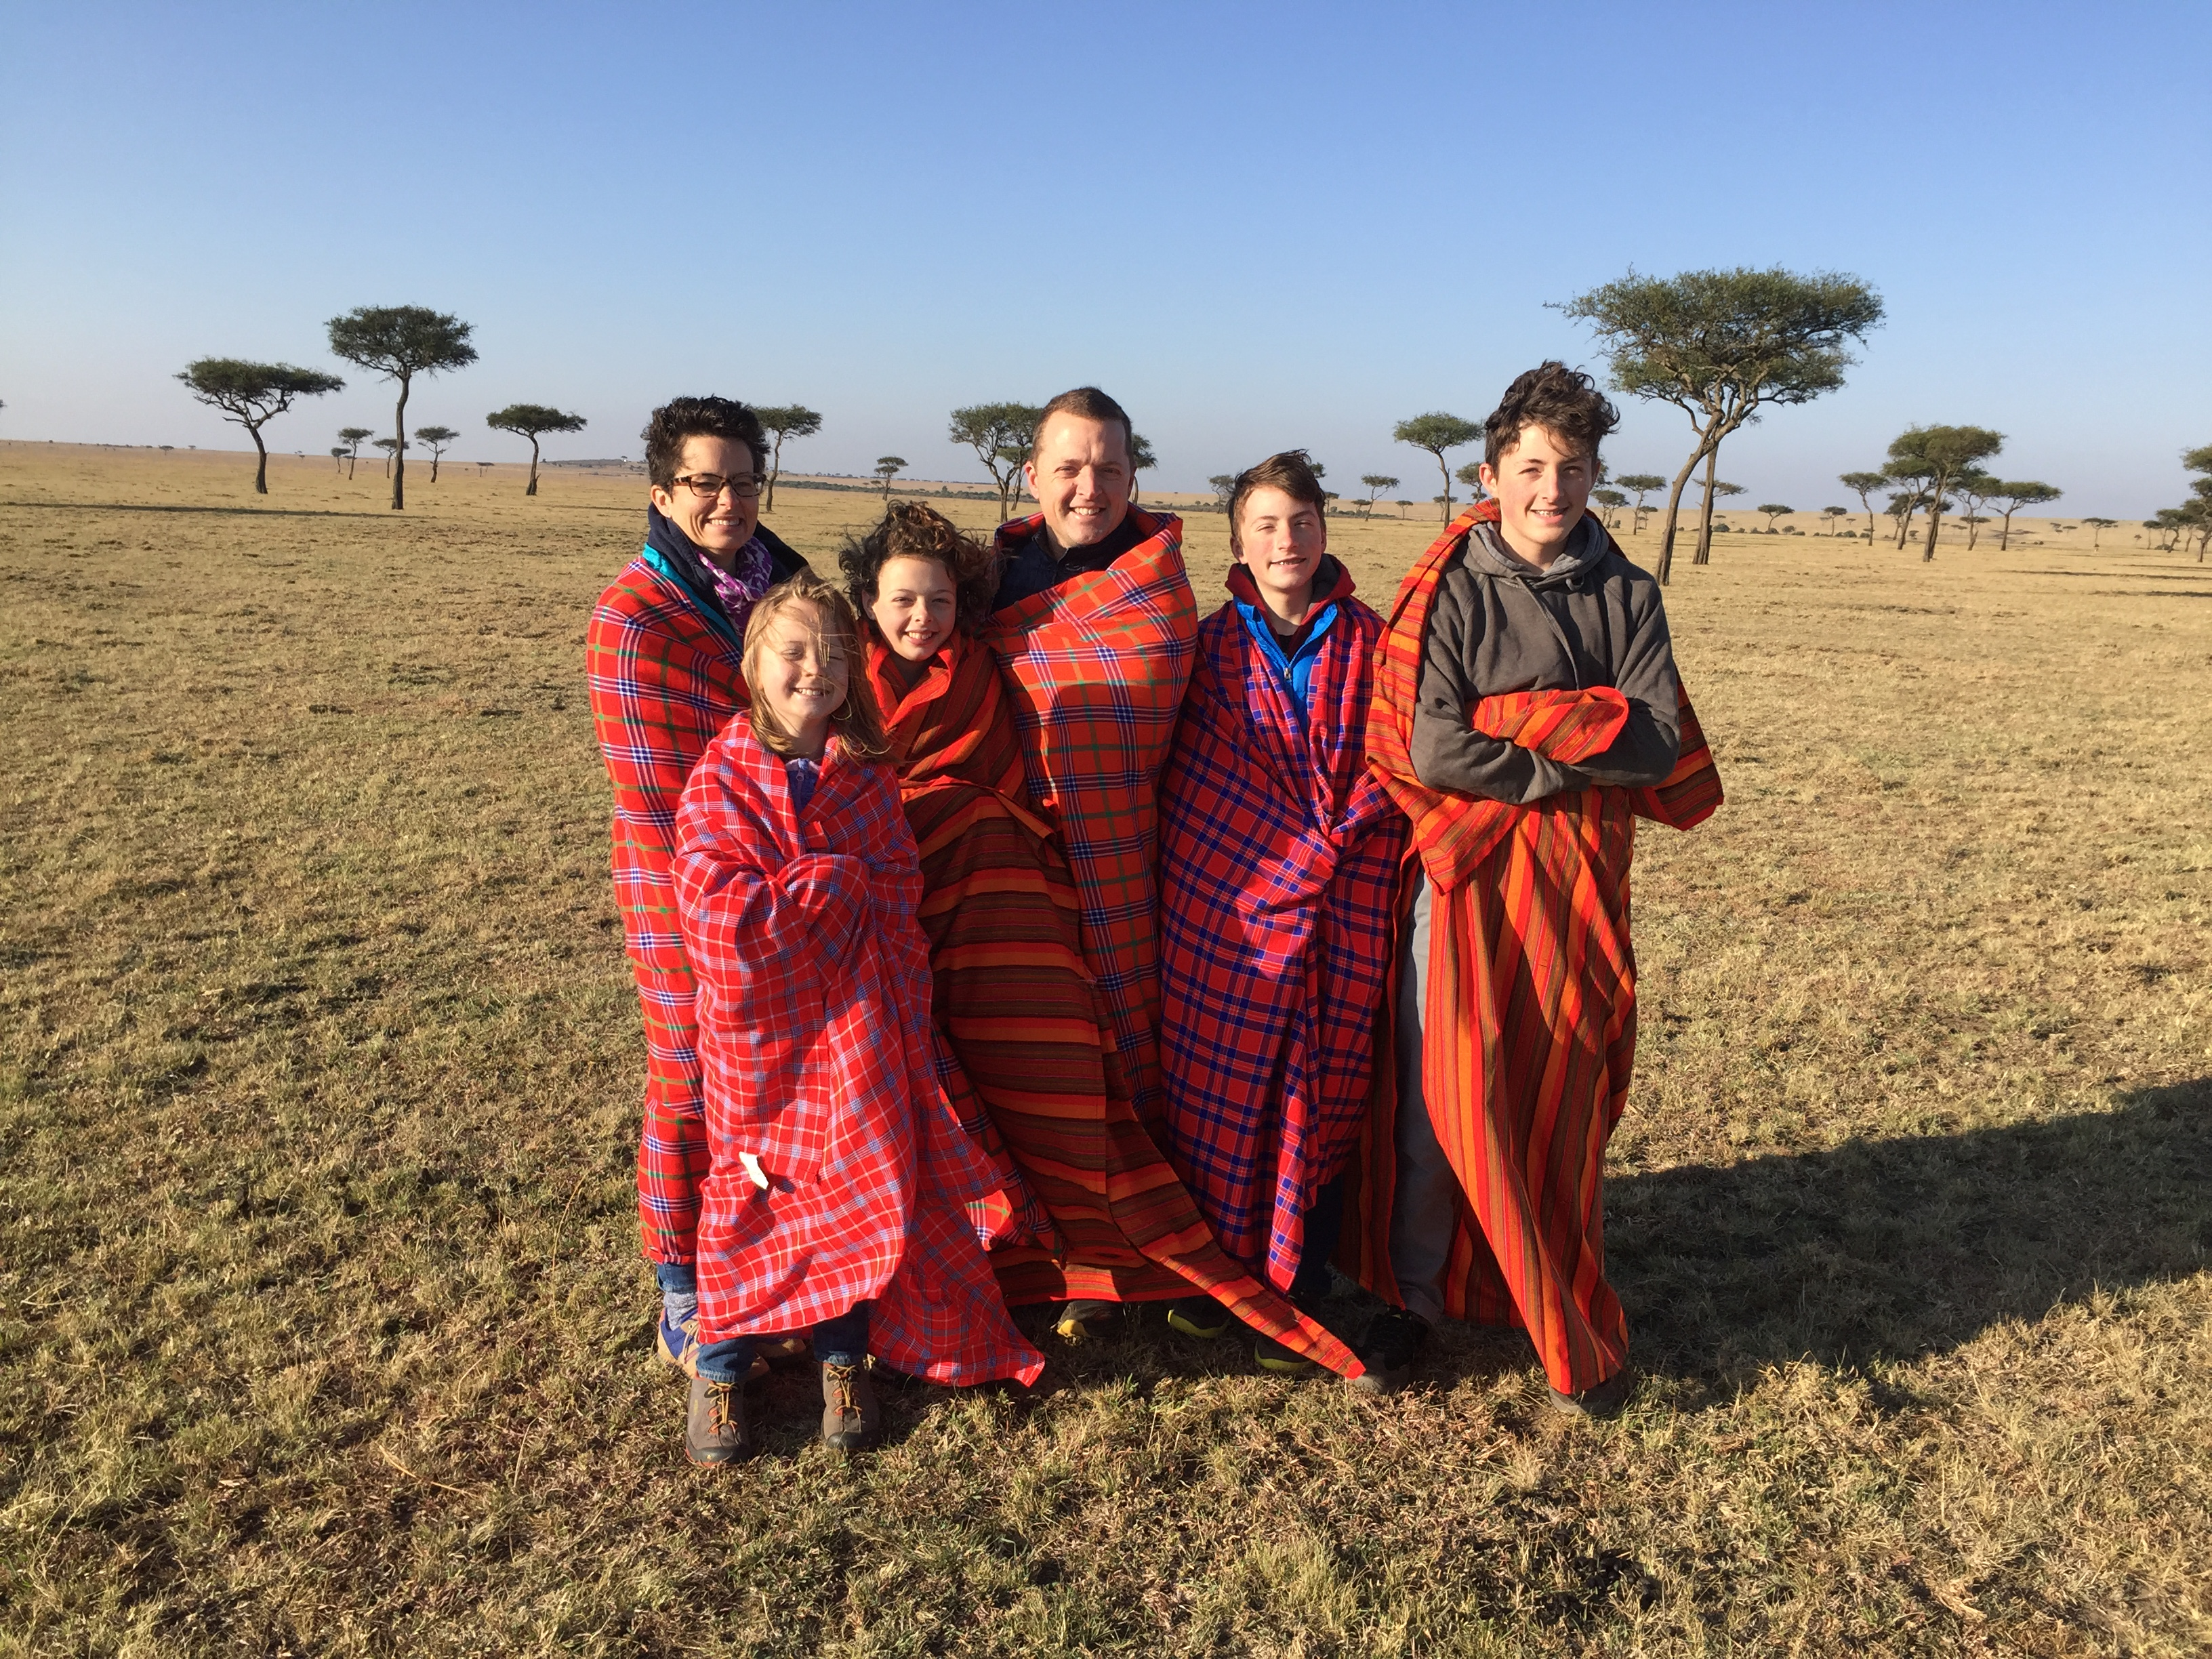 The Caire family in Africa, wrapped in traditional blankets. From left are Allison, Sarah, Annie, Will, Peter and David.